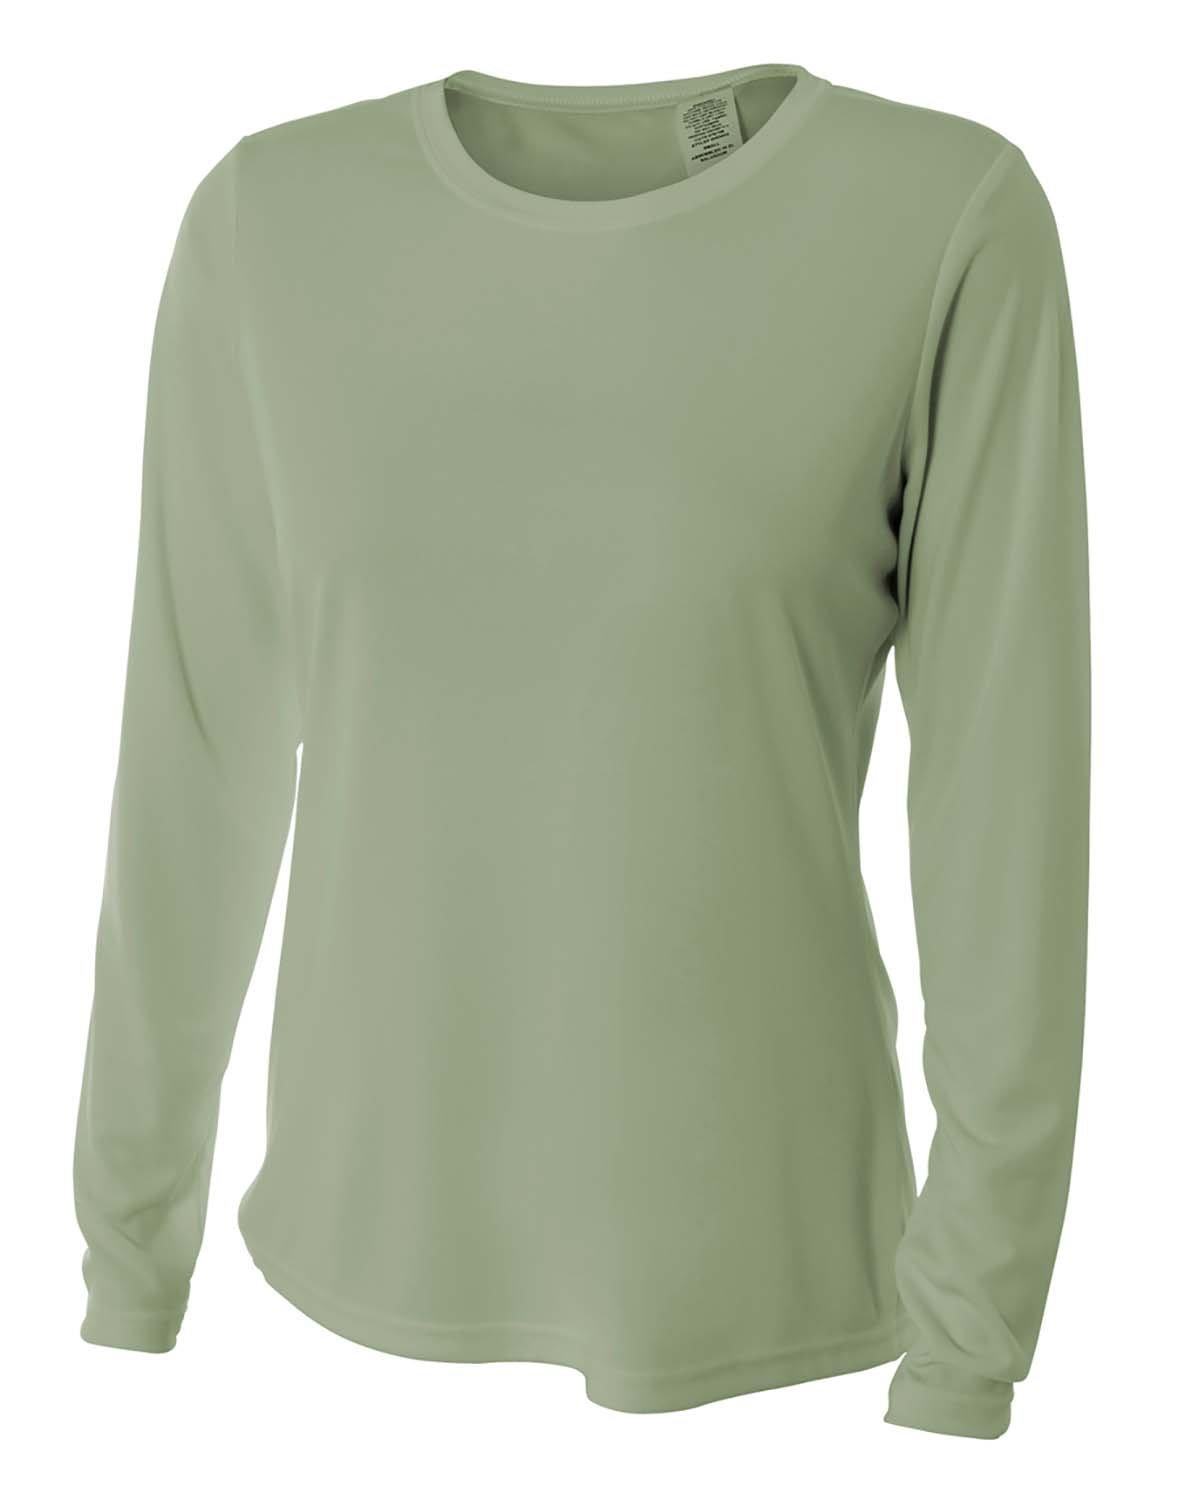 A4 Ladies' Long Sleeve Cooling Performance Crew Shirt OLIVE